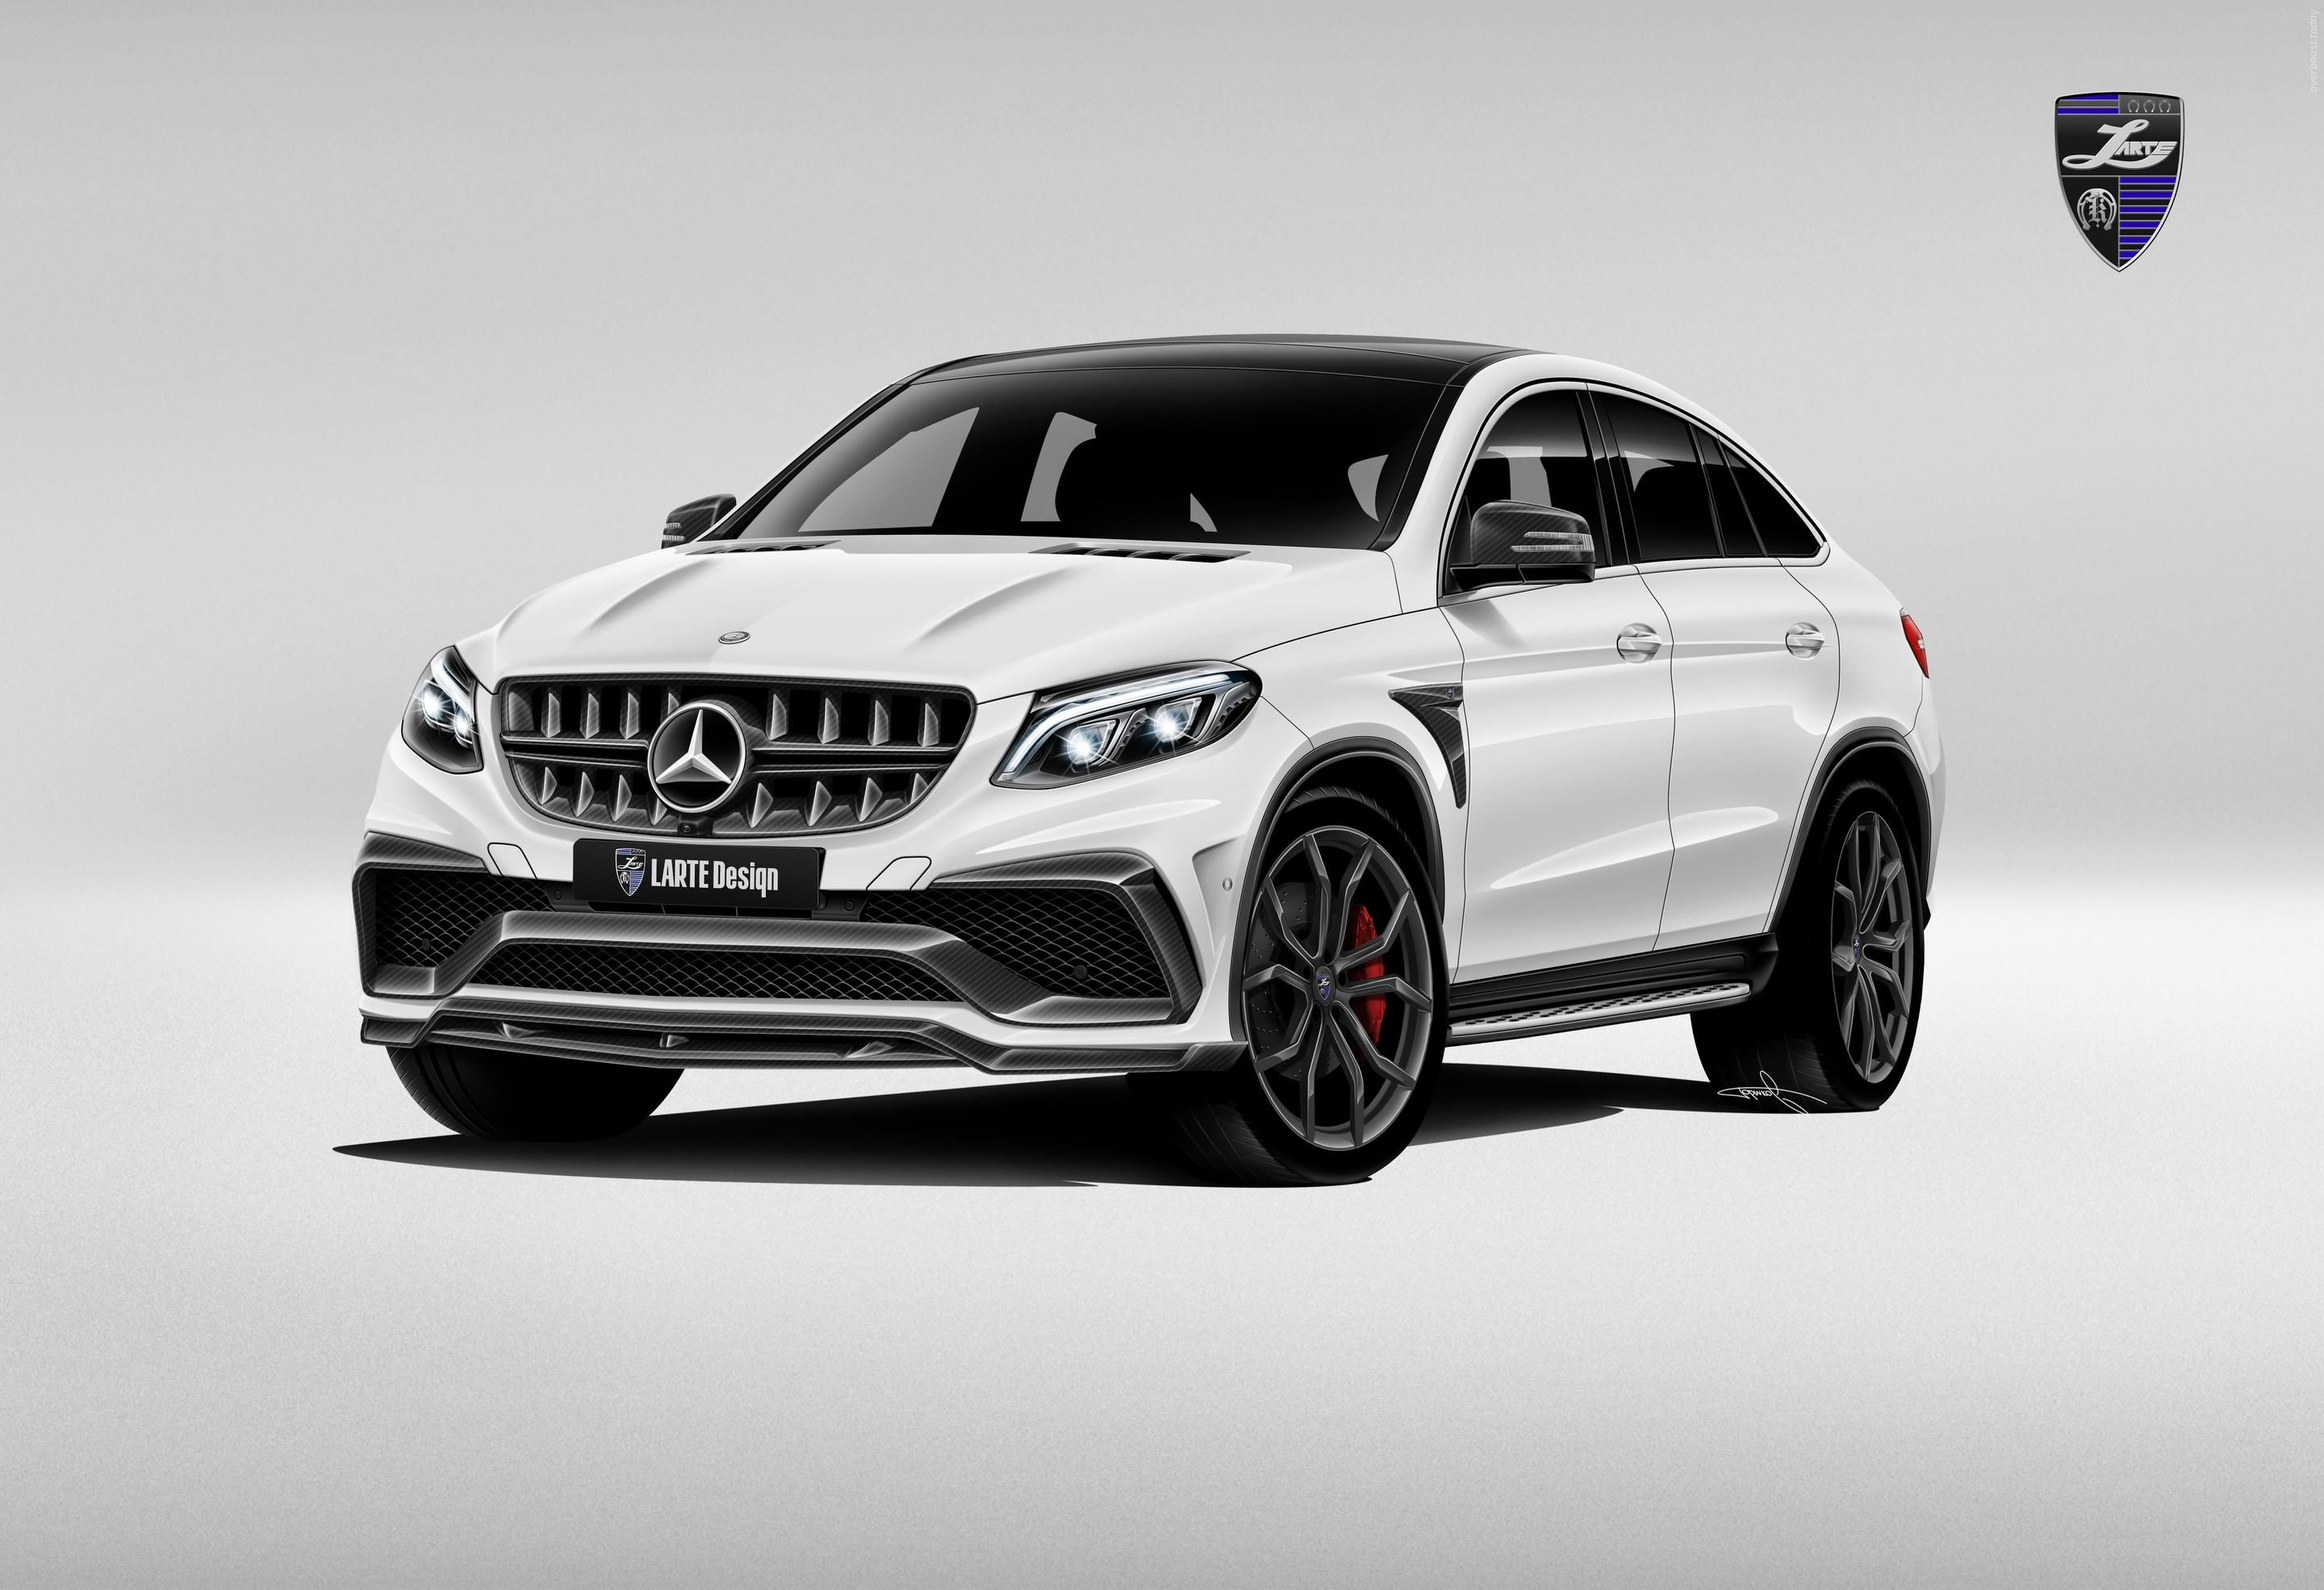 2016 Larte Design Mercedes-AMG GLE63 Coupe  #Larte_Design #Segment_J #Mercedes_Benz_GLE_63_AMG_Coupe #Mercedes_AMG #Mercedes_Benz #Mercedes_Benz_GLE_Coupe #tuning #2016MY #German_brands